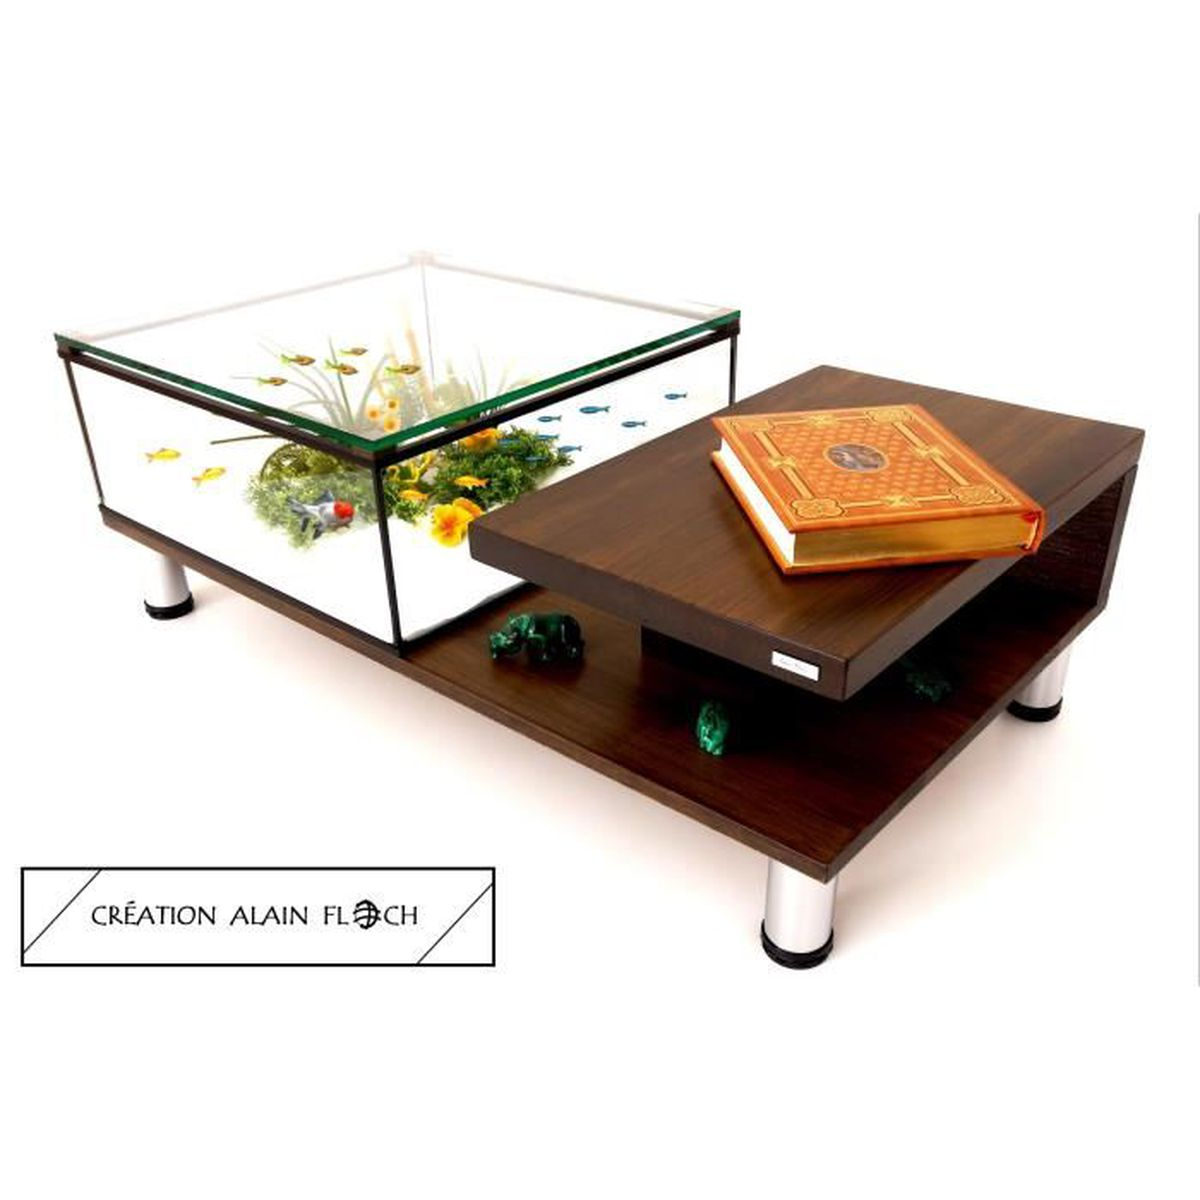 Design Unique Terrarium Annabelia 20 Basse Led Aquarium Table JT3lKFc1